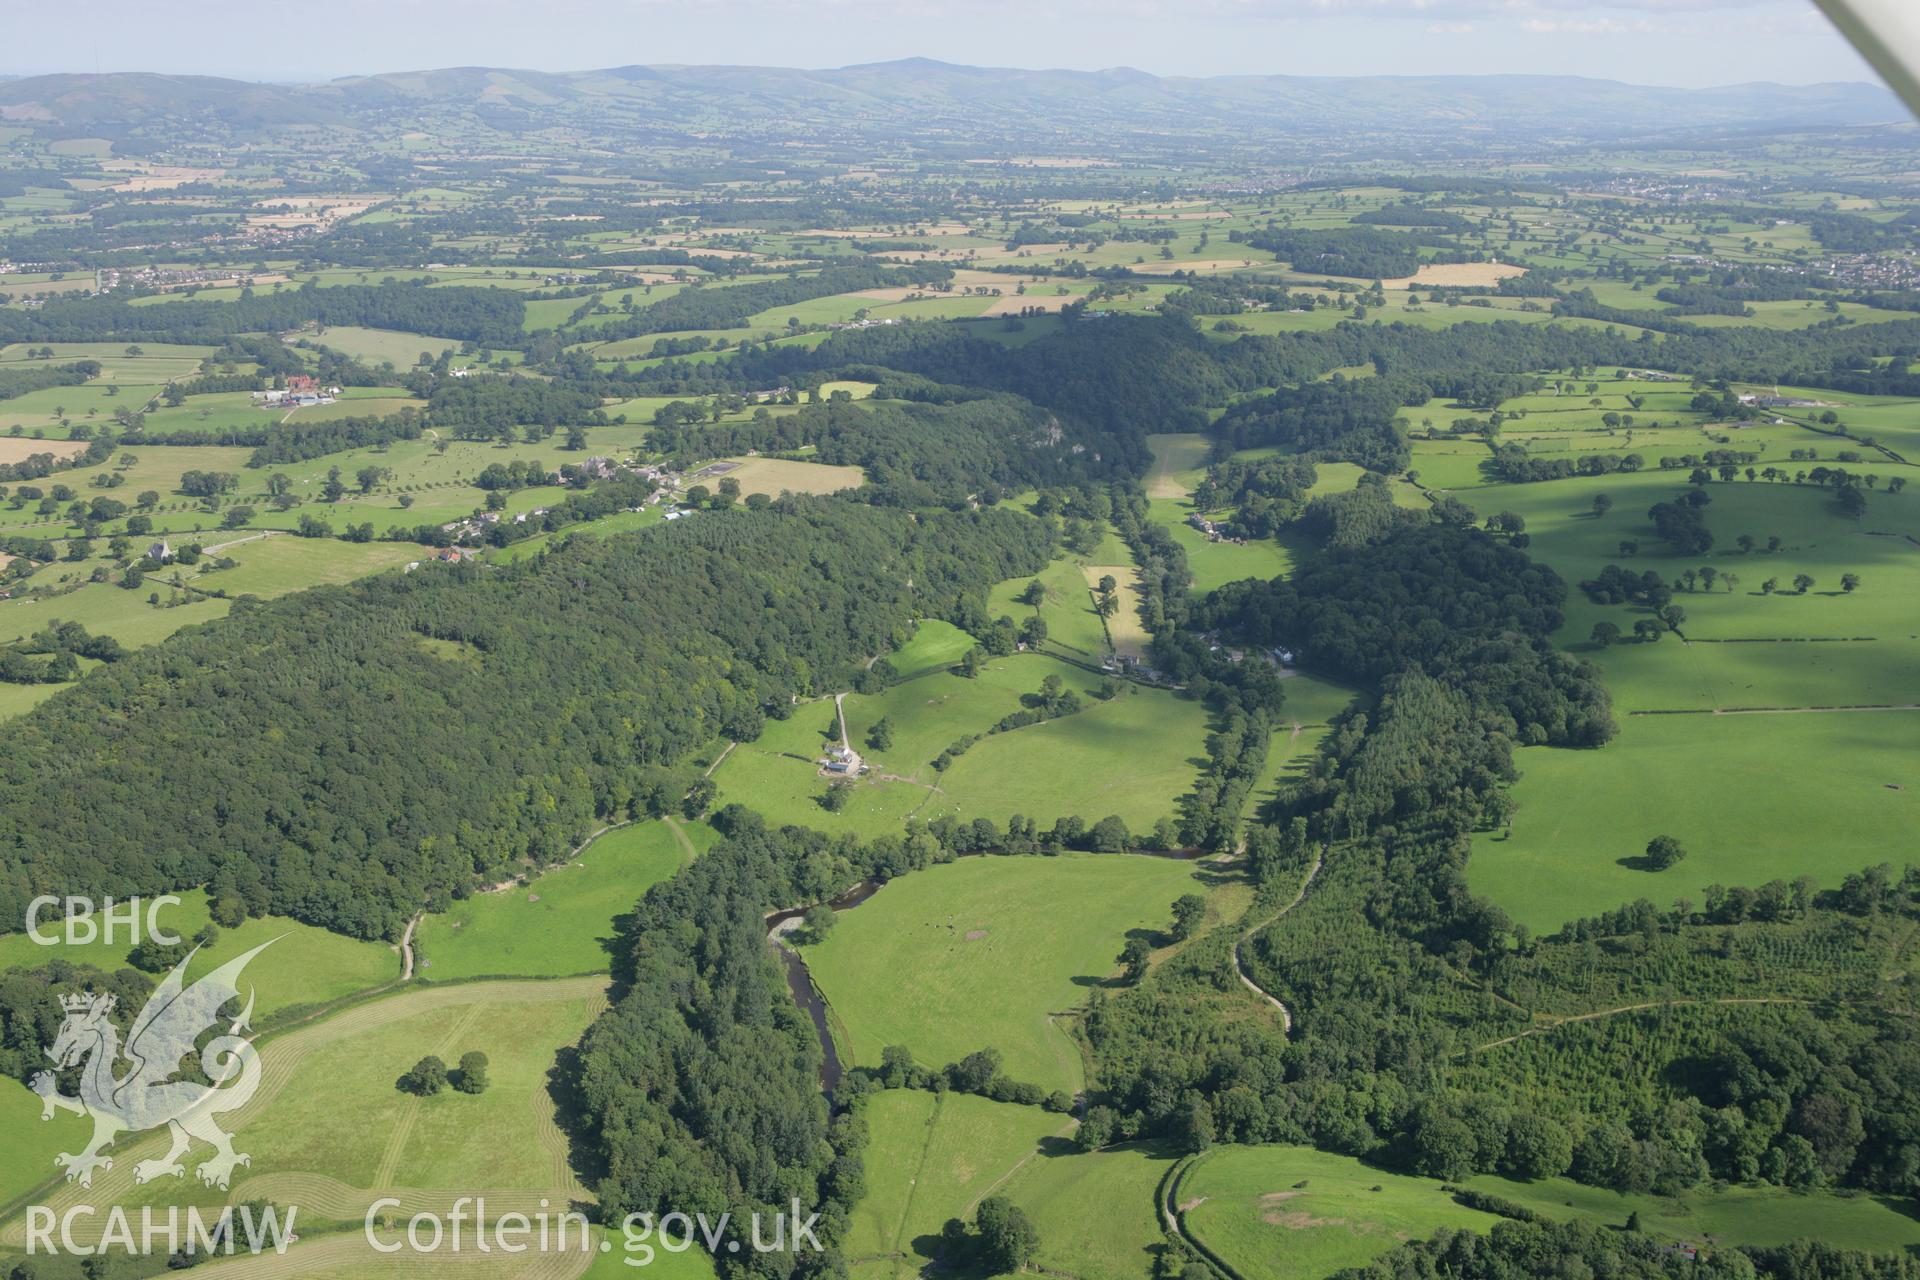 RCAHMW colour oblique aerial photograph of Pontnewydd Cave and surrounding landscape. Taken on 31 July 2007 by Toby Driver